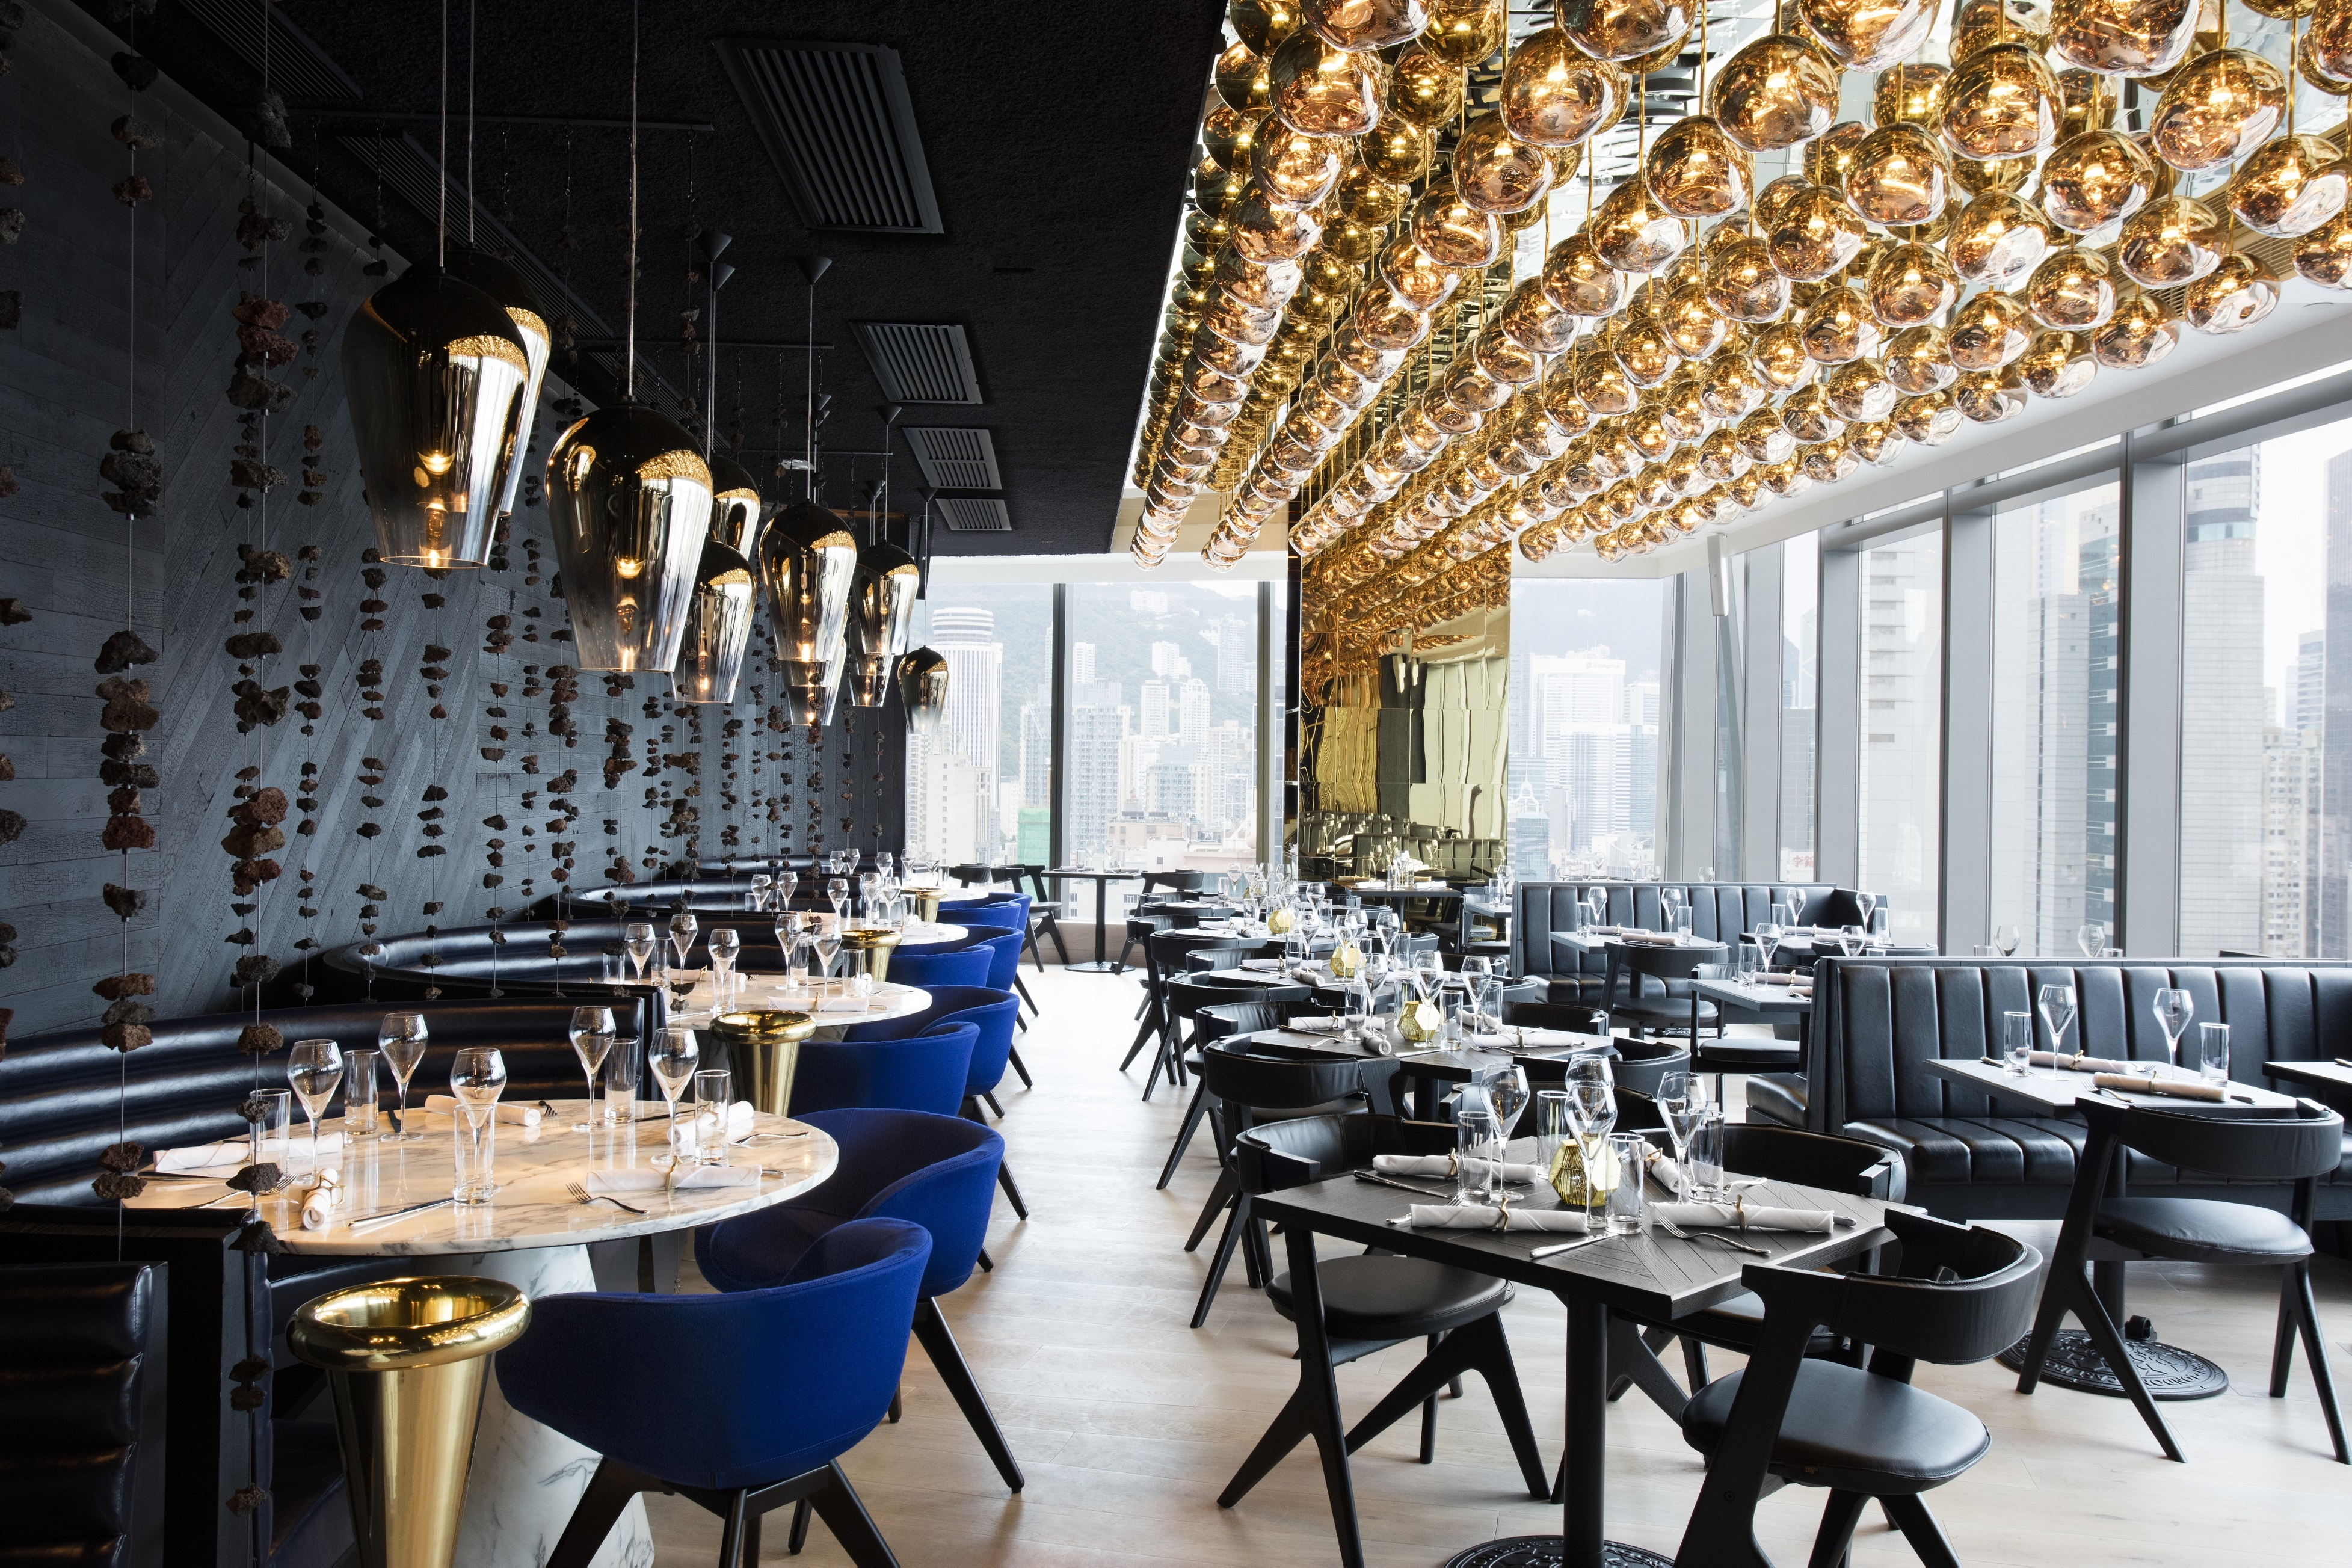 Review: Alto serves great steak and amazing views